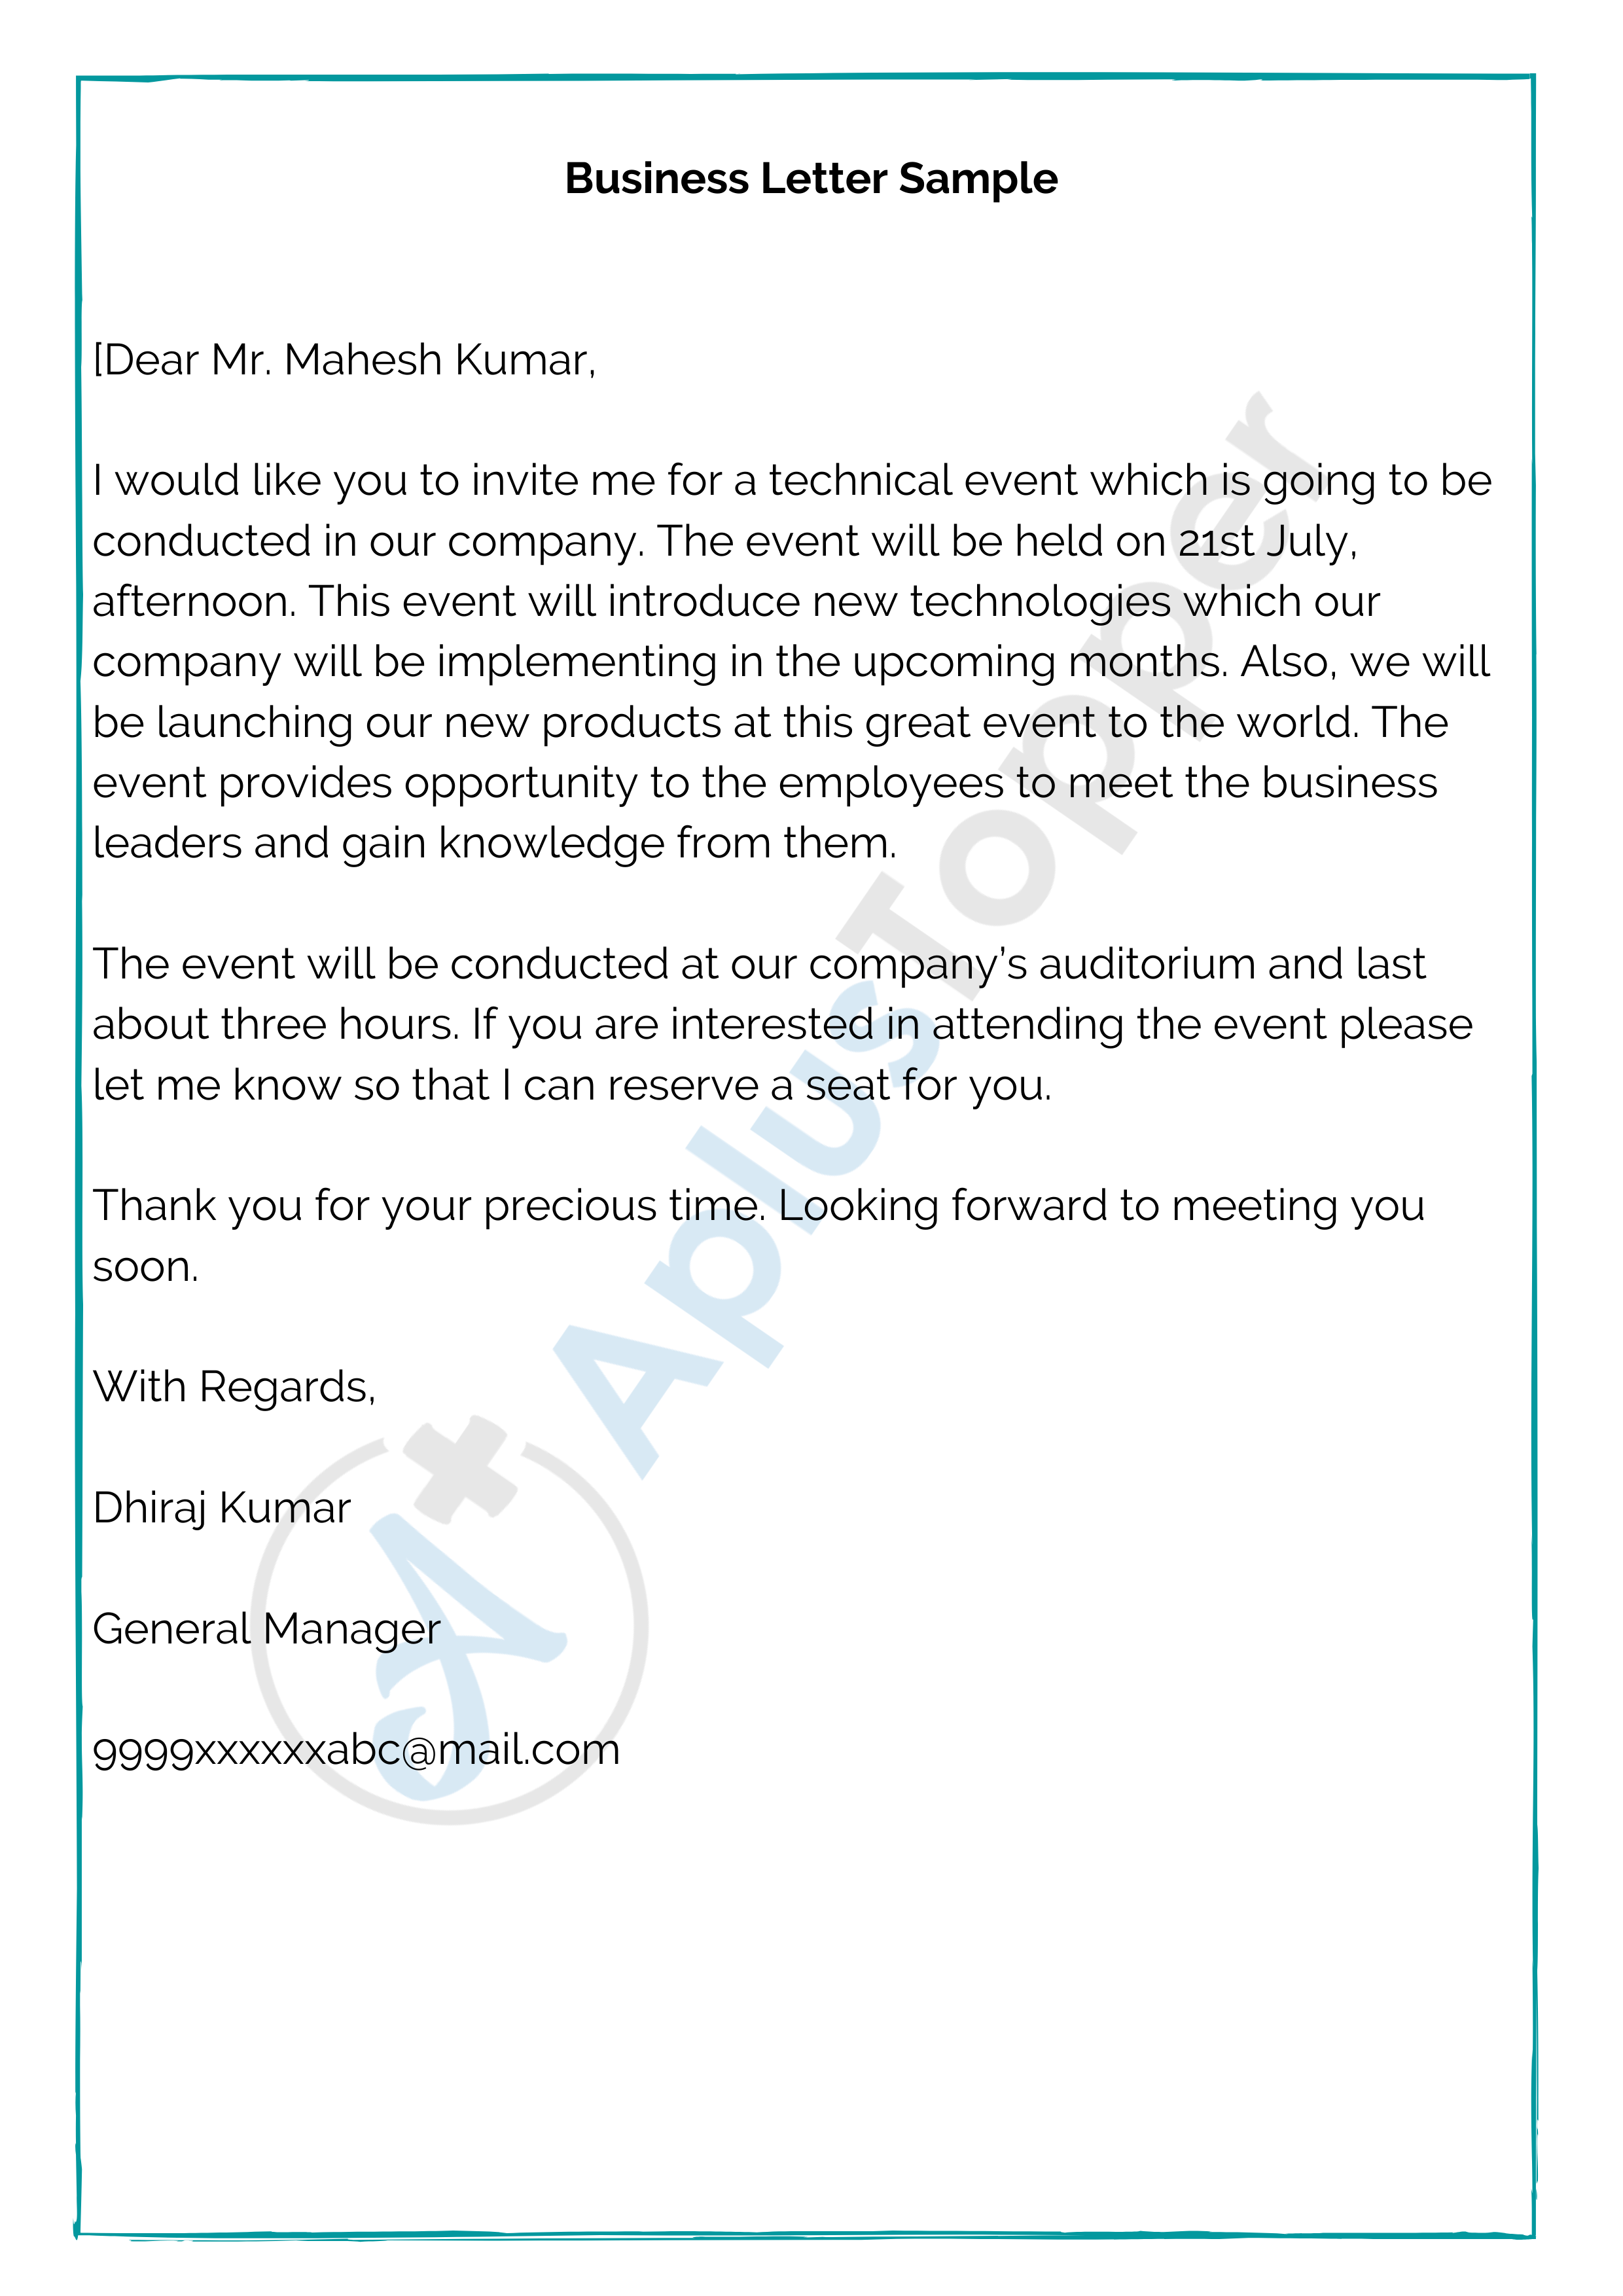 Business Letter Format Samples How To Write Business